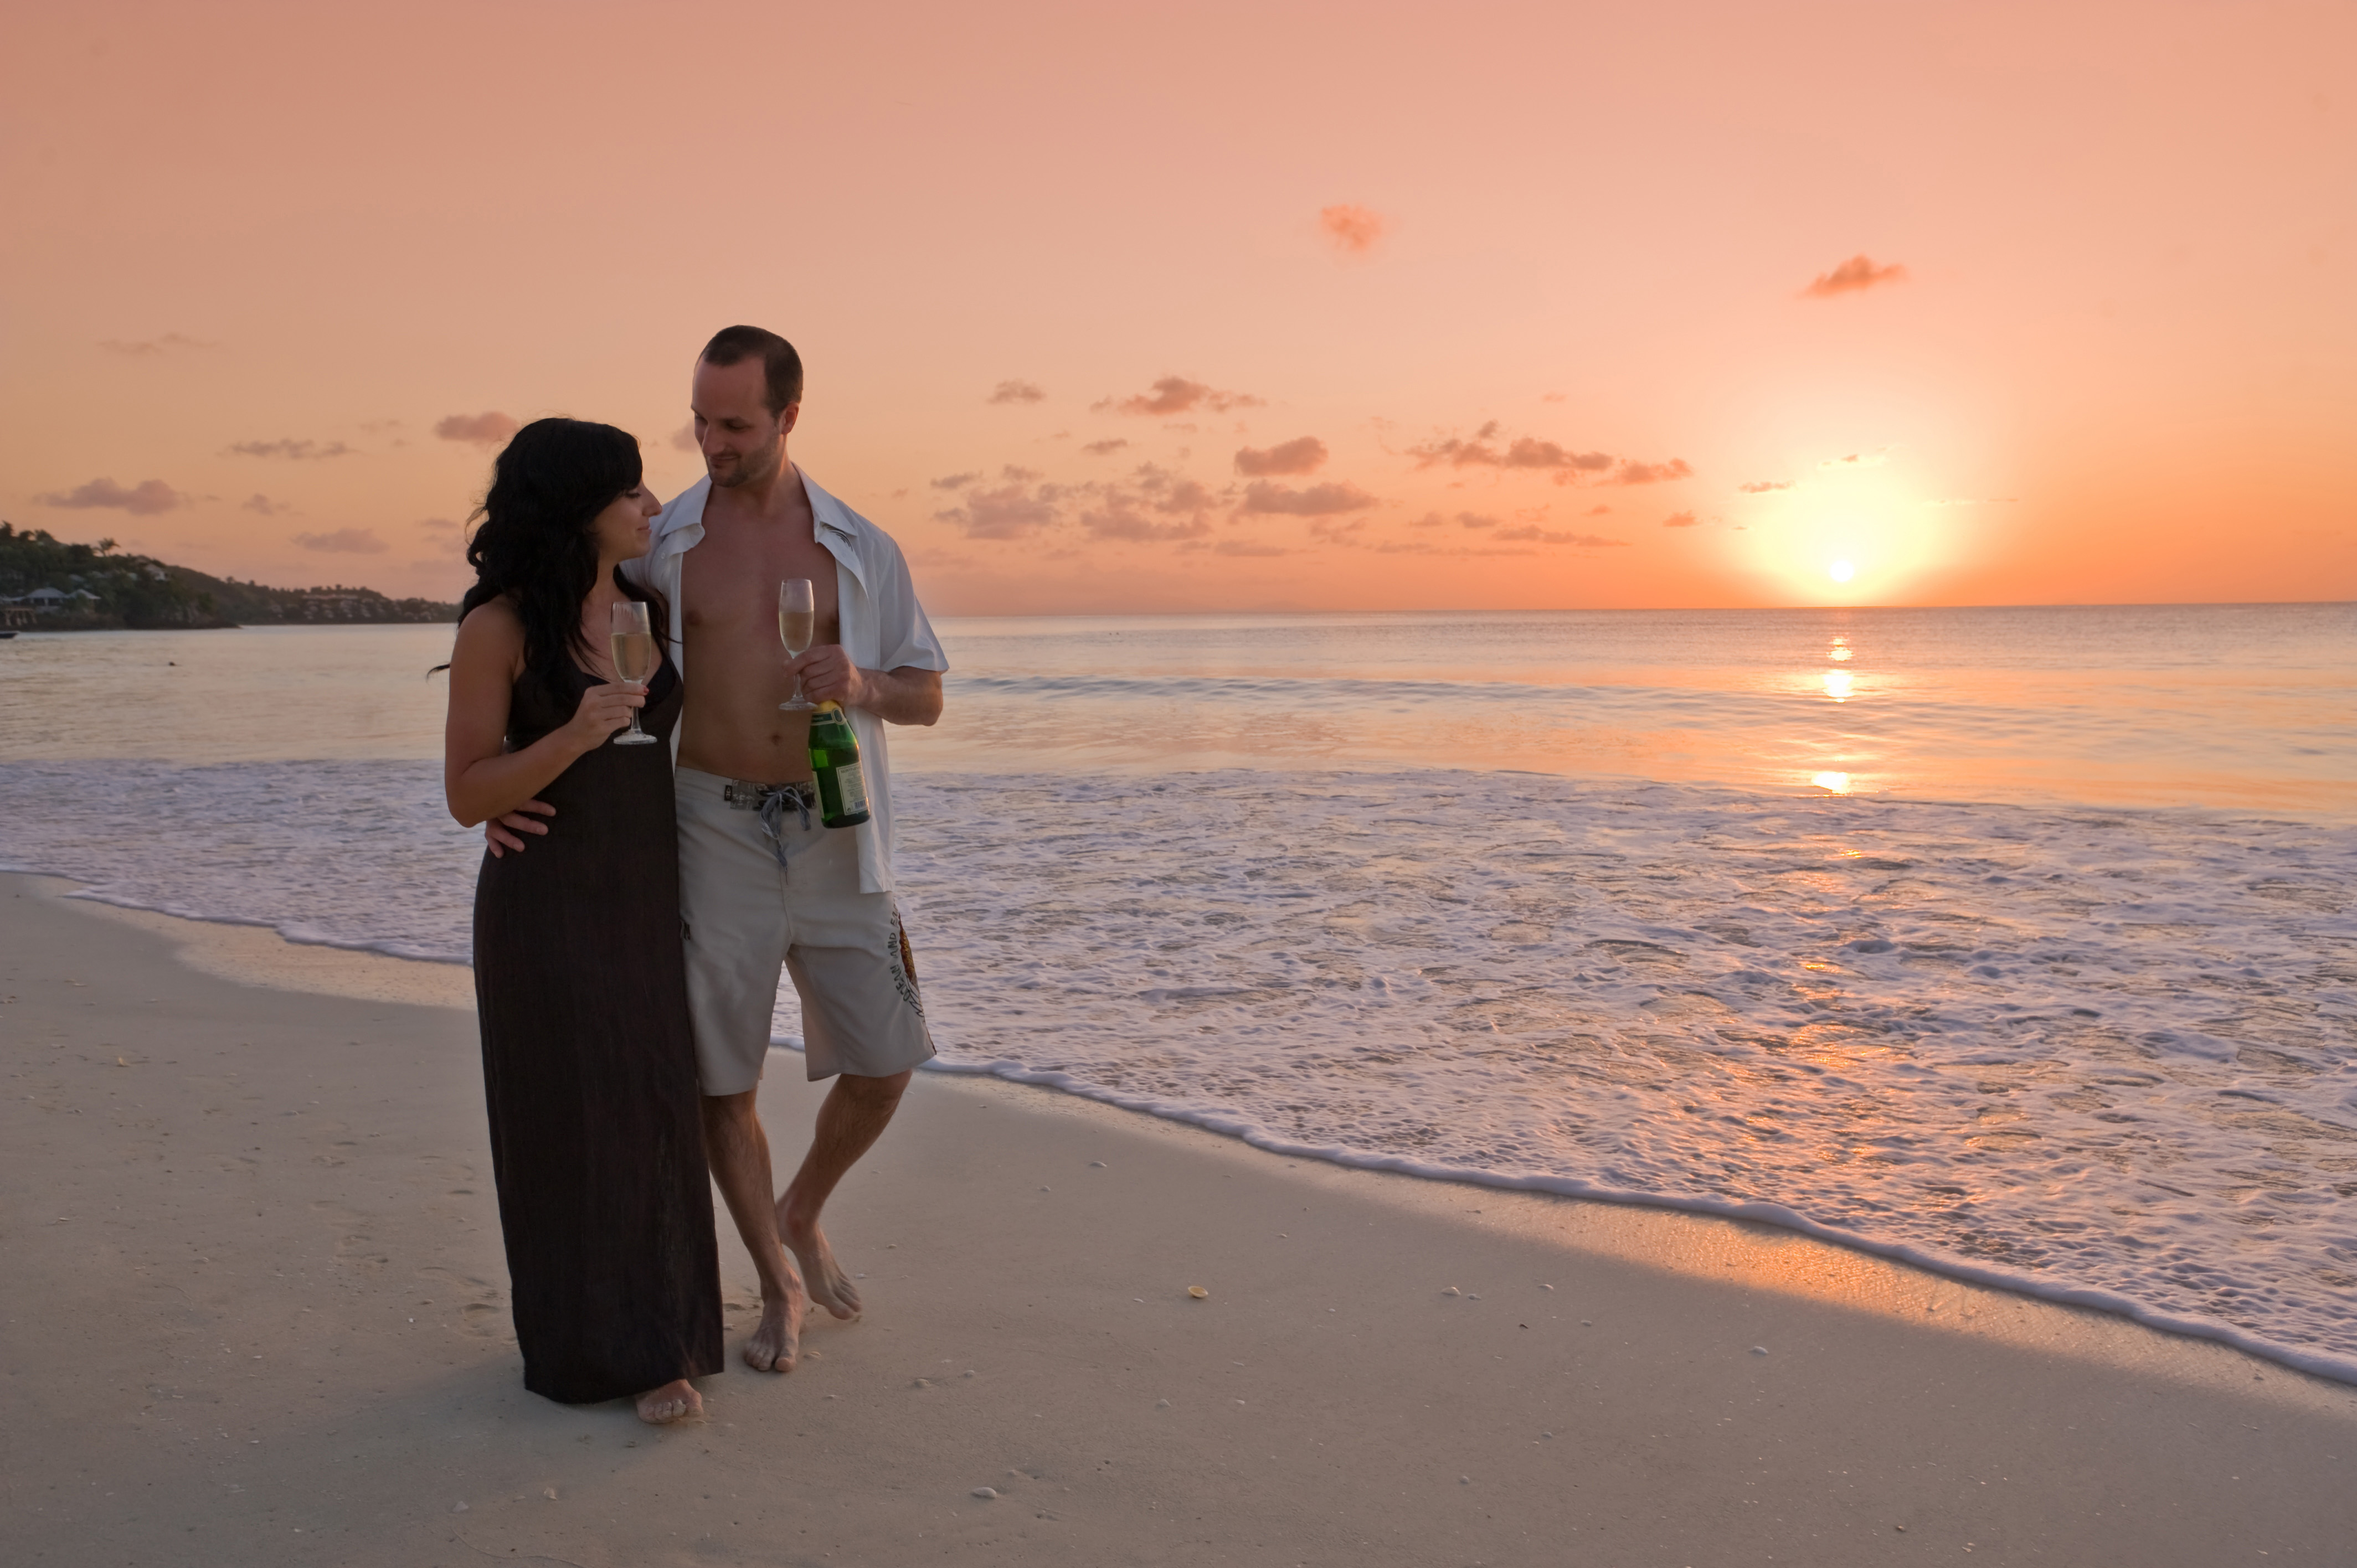 Catch spring fever and some rays too at jolly beach resort for Couples spa weekend getaway